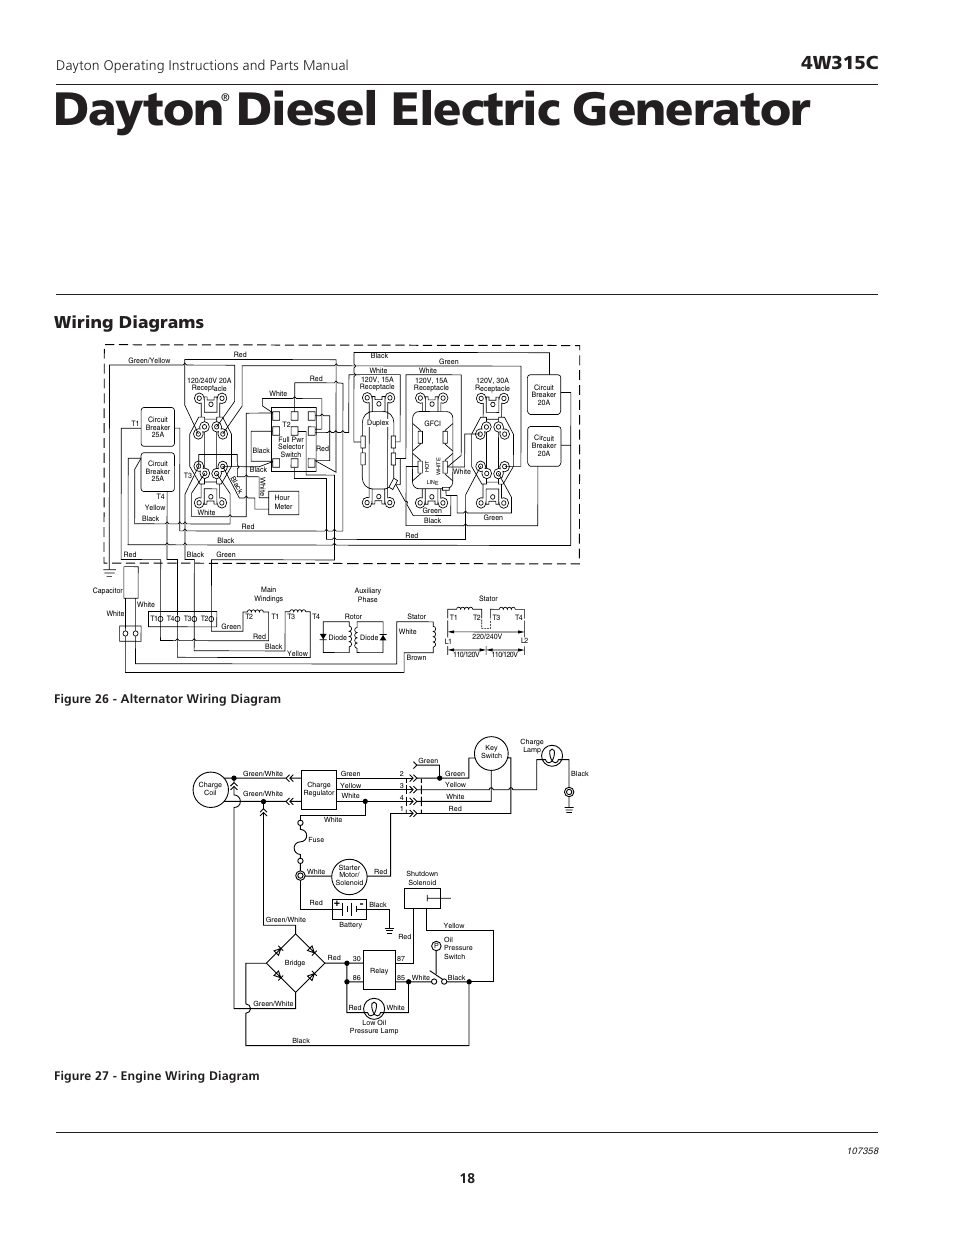 dayton diesel electric generator, 4w315c, wiring diagrams | dayton  operating instructions and parts manual